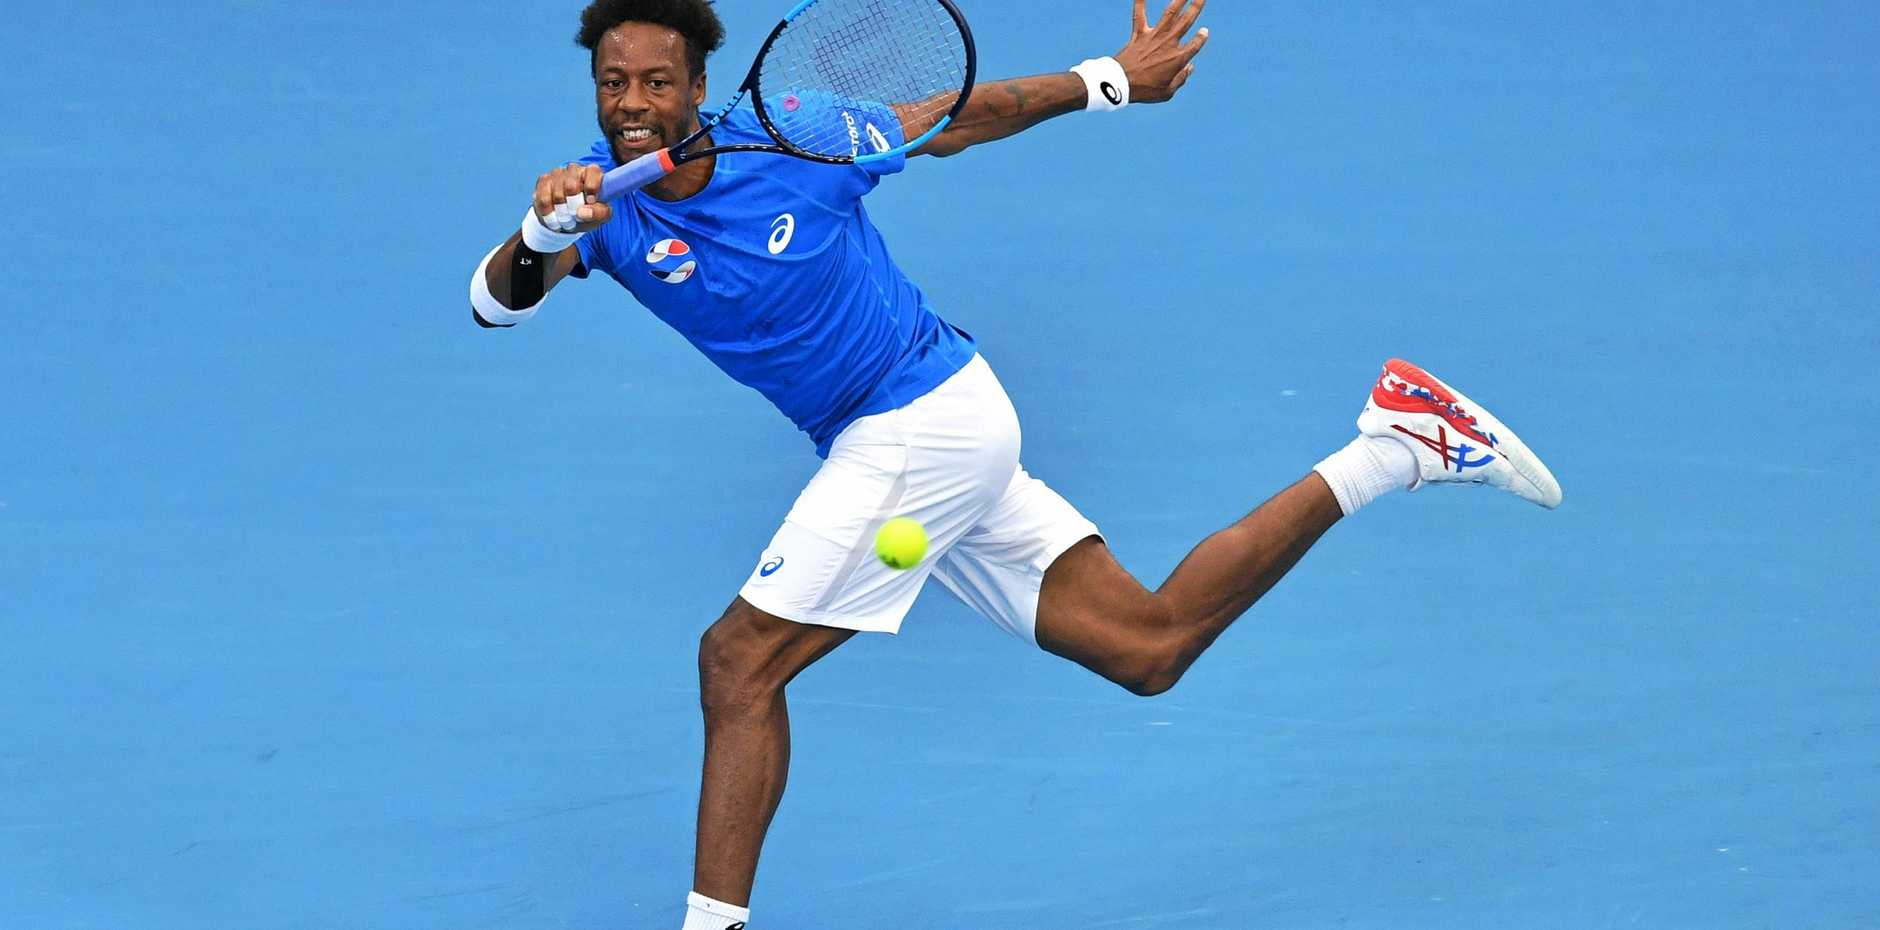 France's Gael Monfils in action against Chile's Cristian Garin on Saturday at the ATP Cup tennis tournament at Pat Rafter Arena, Brisbane. Picture: Darren England/AAP